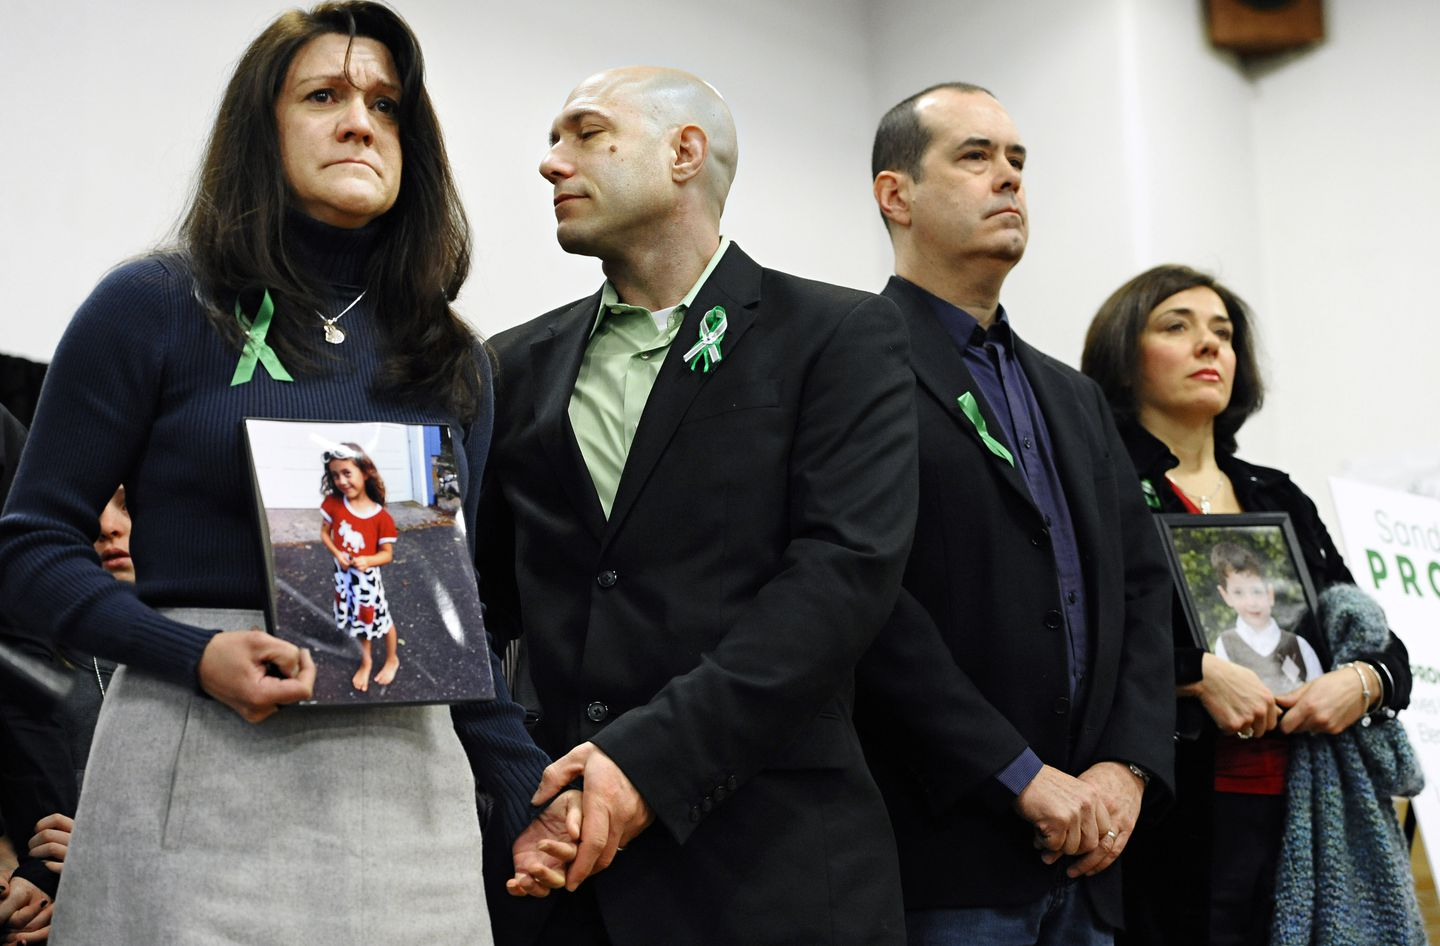 Six years after Sandy Hook, traumatic grief still grips